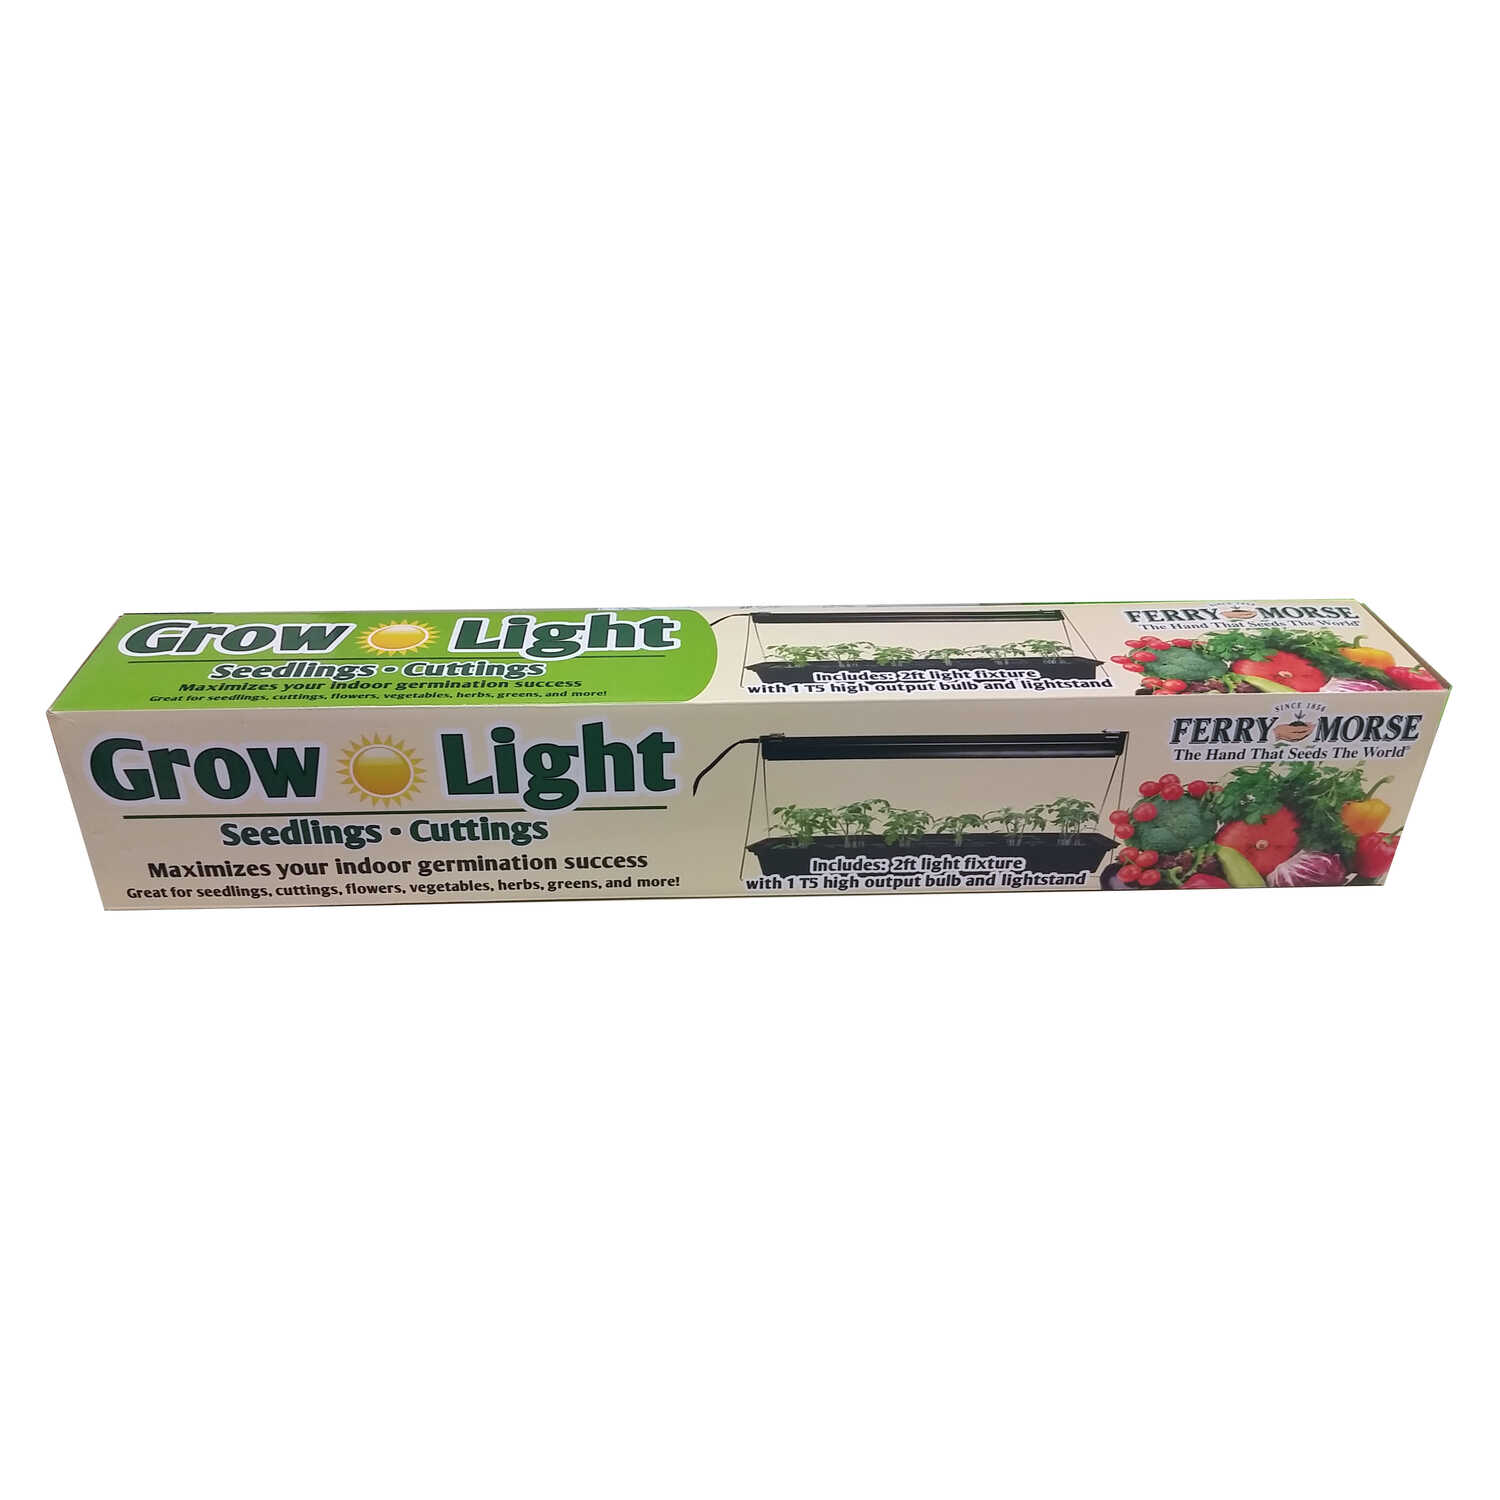 Ferry-Morse  Plantation Products  Hydroponic Grow Light